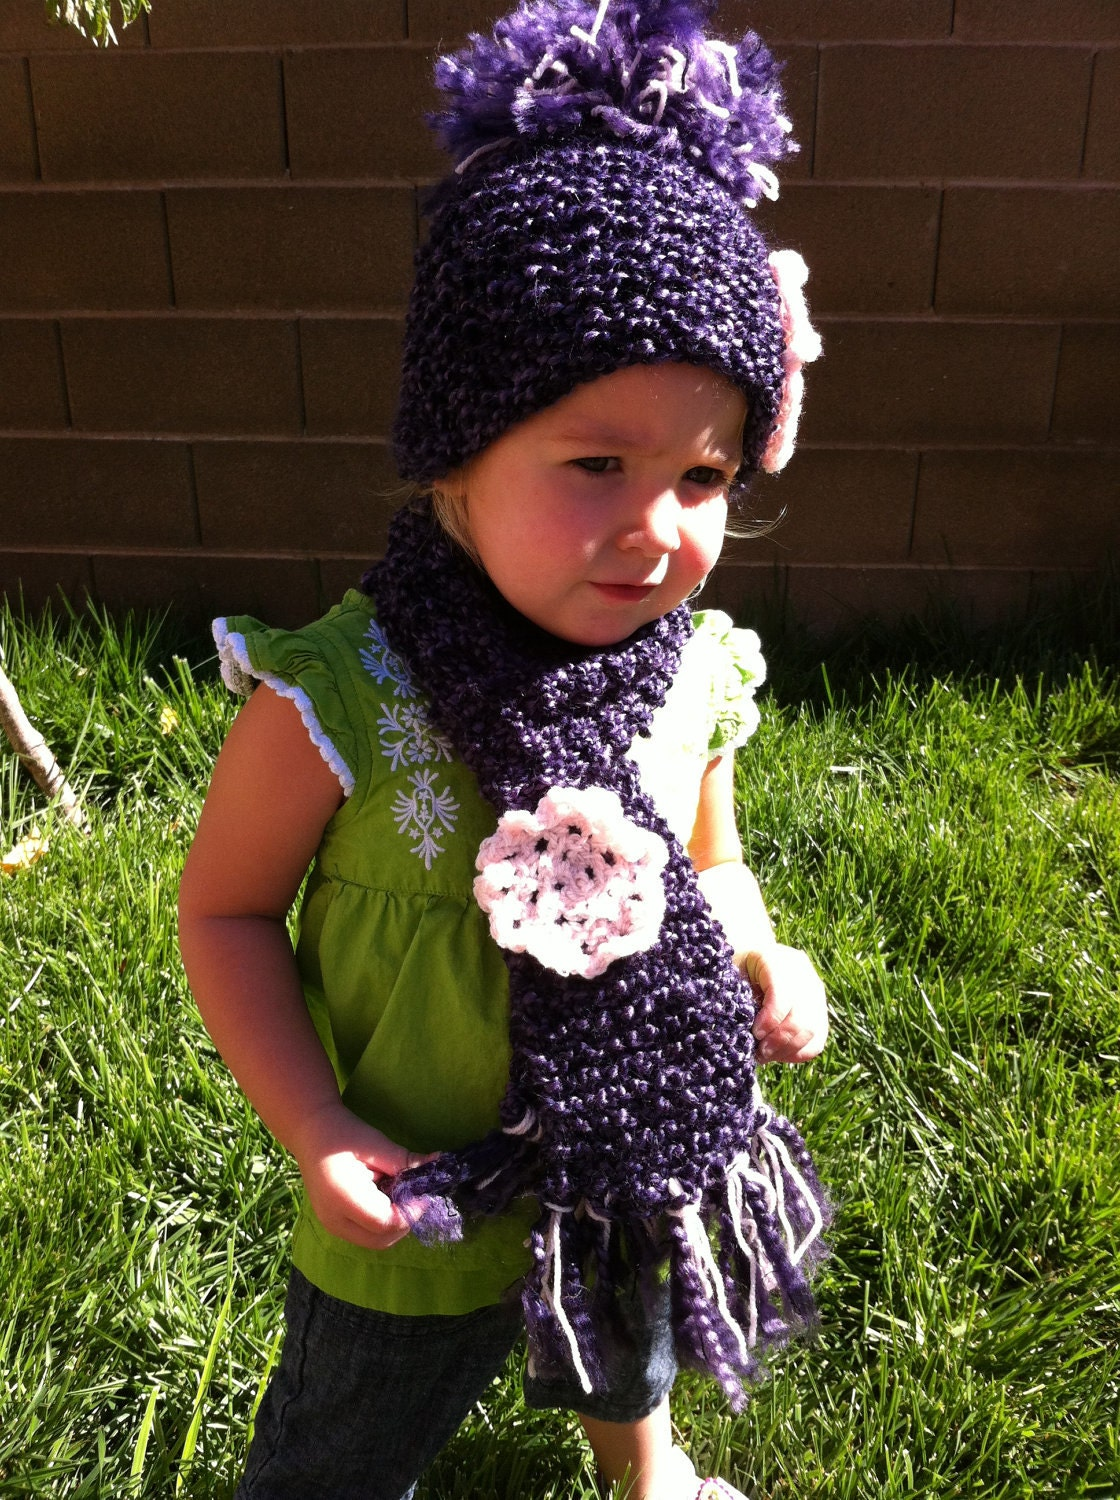 Children's Hand knitted scarf with a large crochet flower - Color shown is Gothic